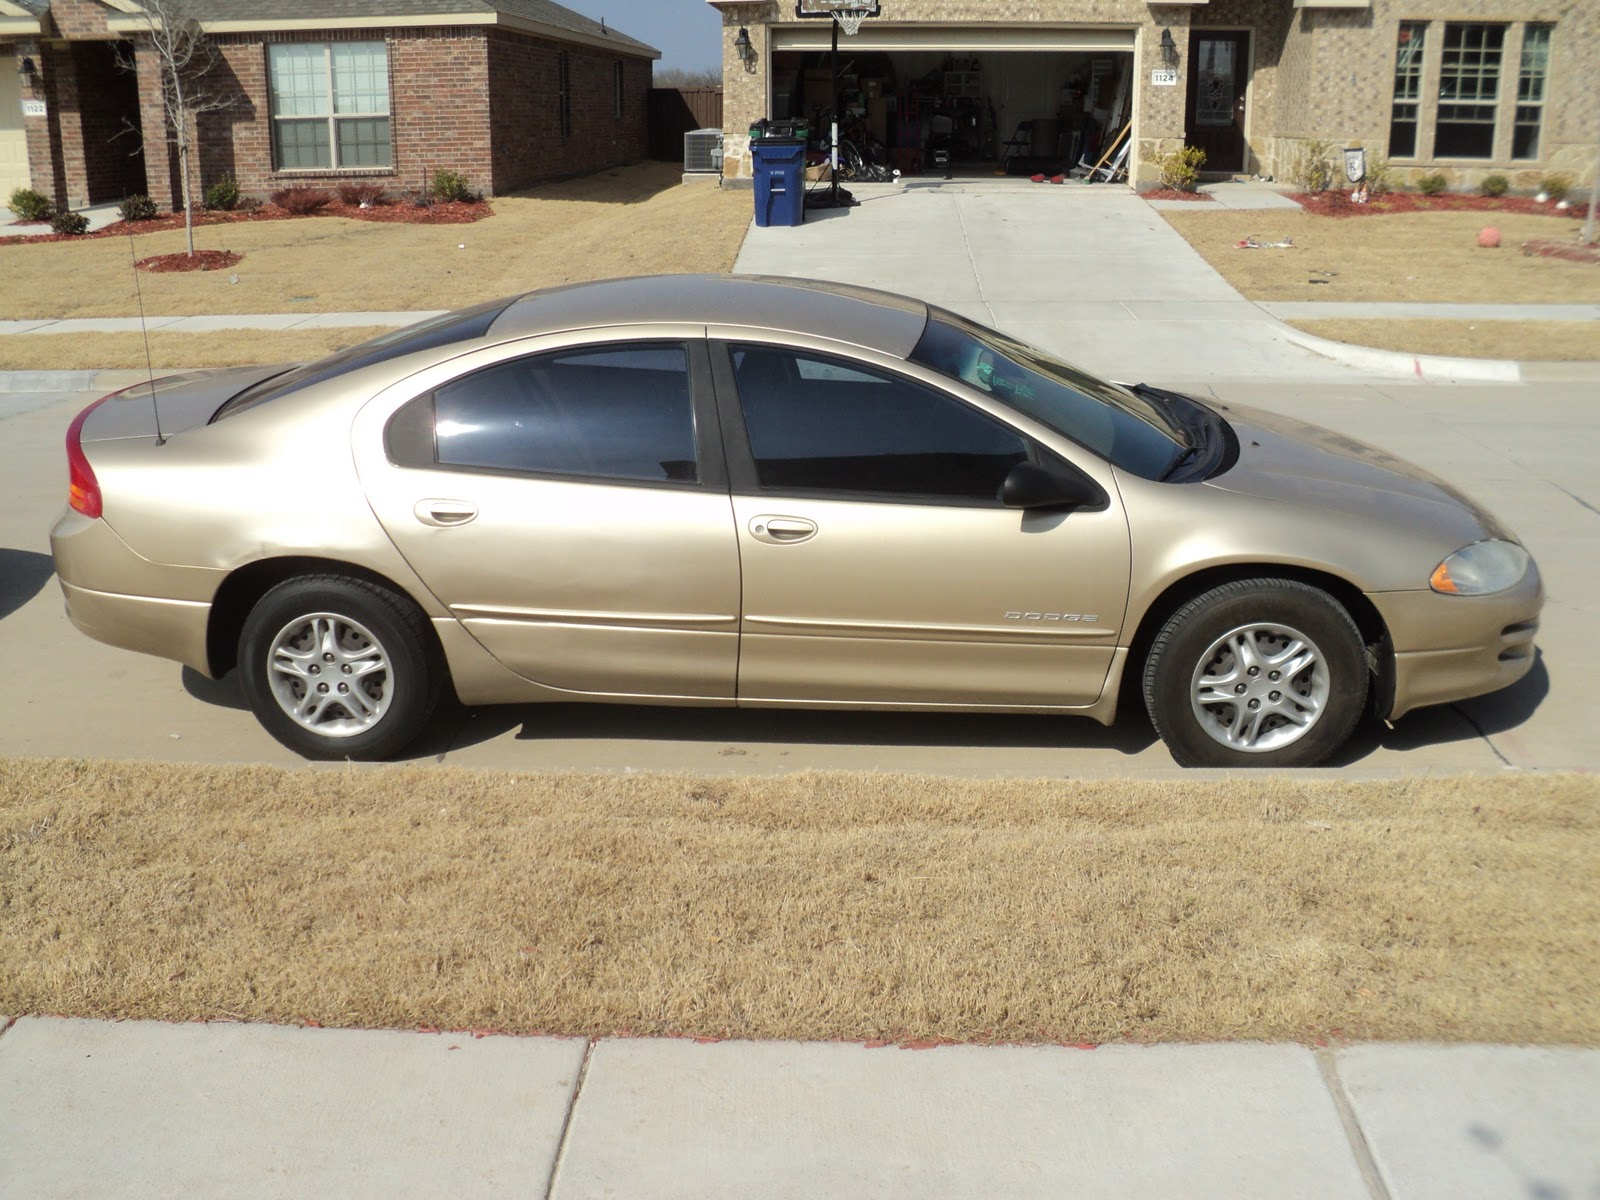 hight resolution of 1999 dodge intrepid gold exterior tan gold cloth interior 97 xxx original miles good solid car for under 4000 asking 3995